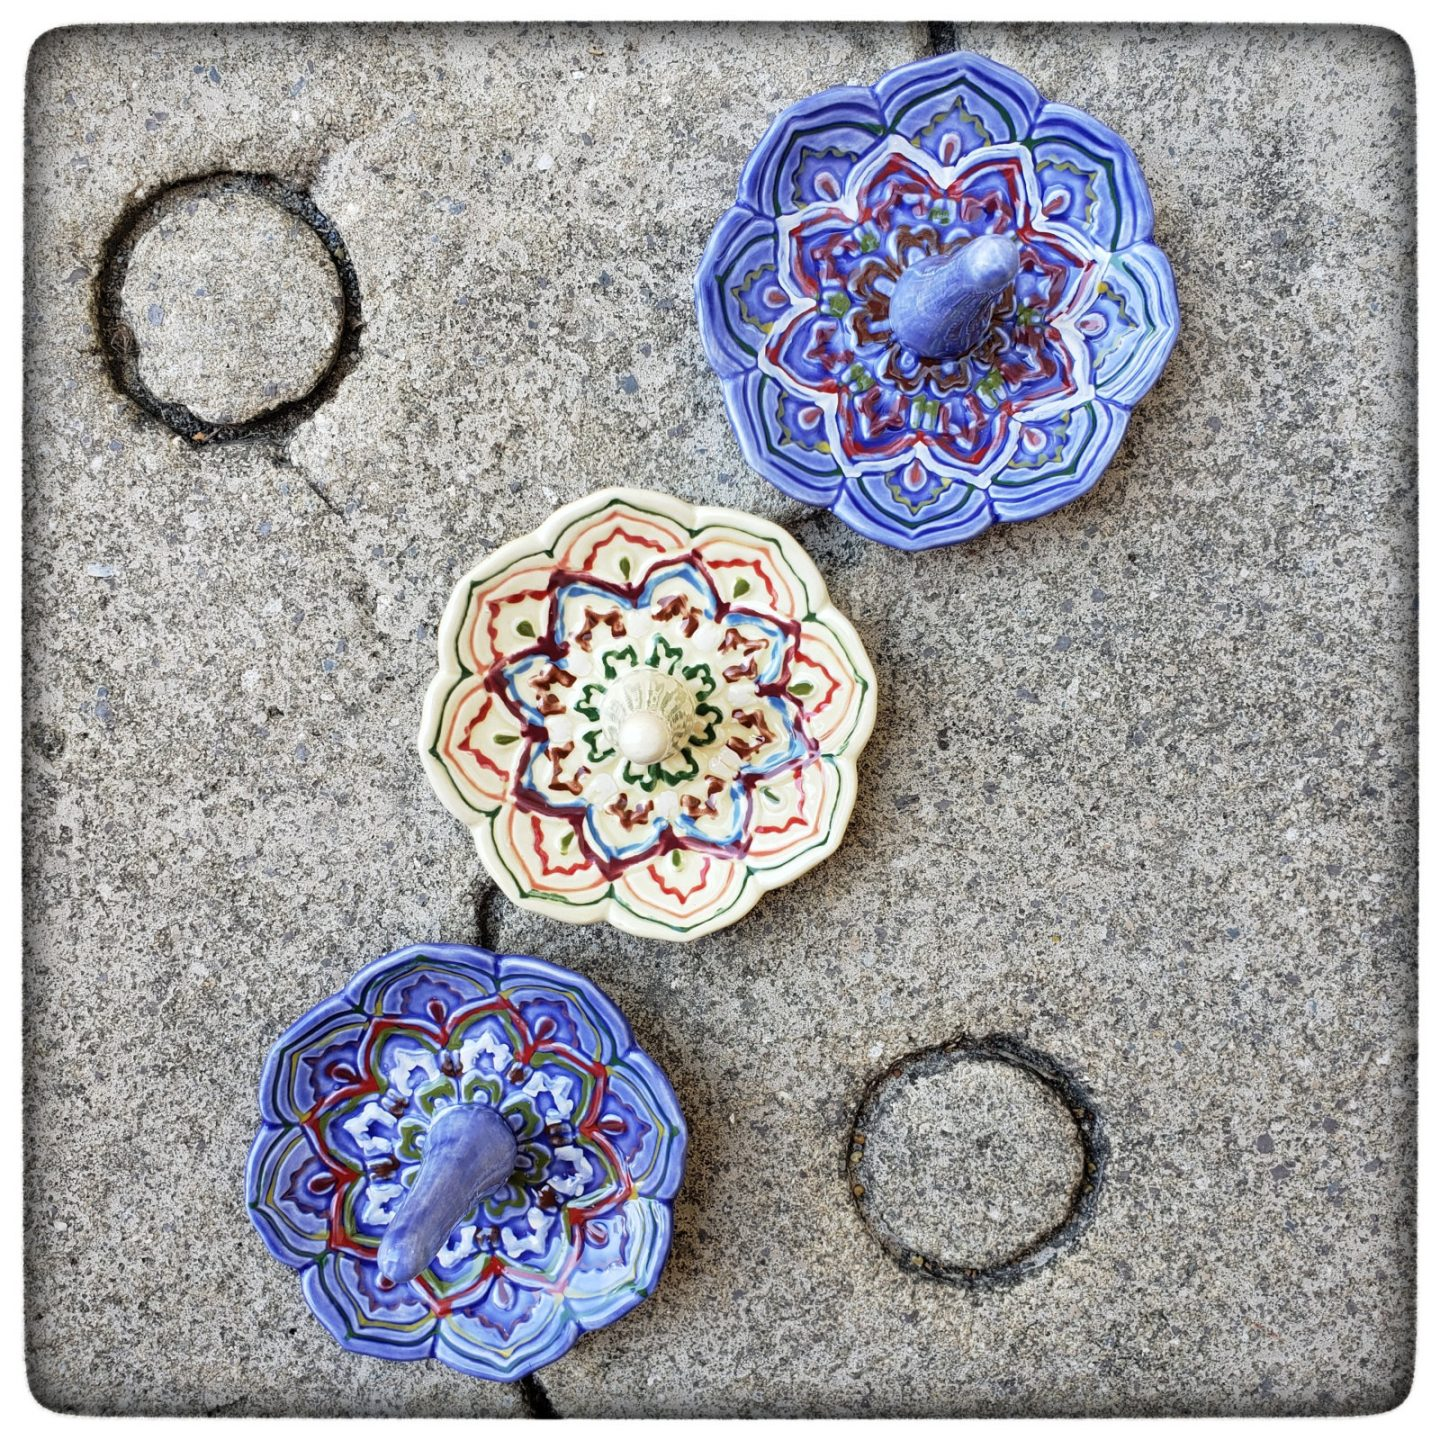 New in the shop: Colorful Ring Holders